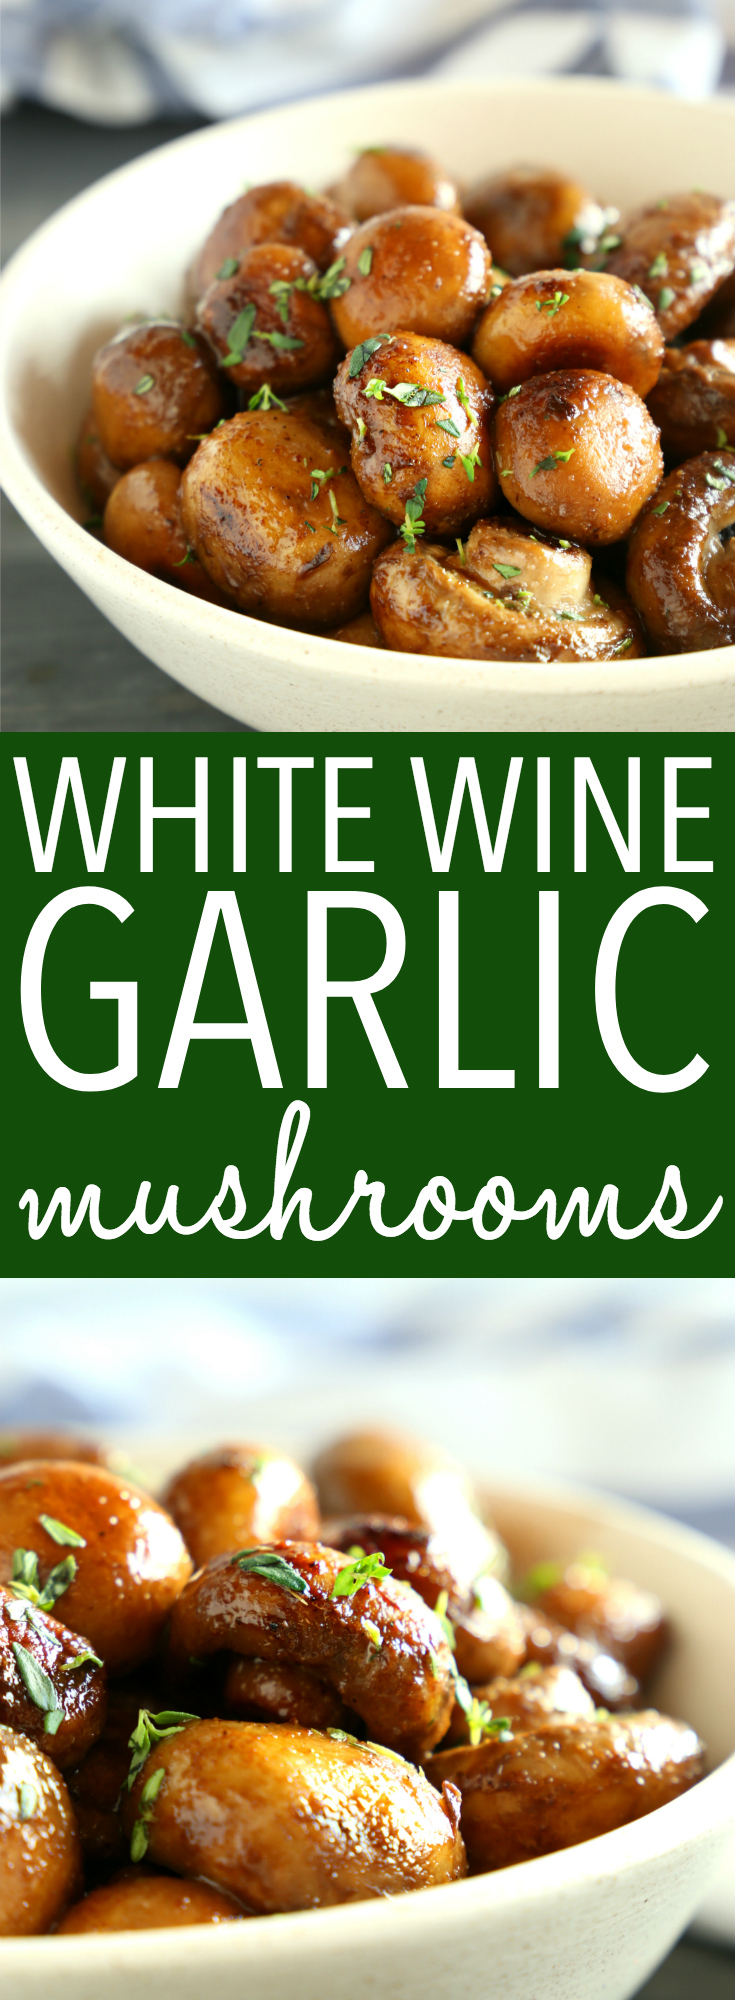 These White Wine and Garlic Mushrooms make the perfect side dish made with only 5 ingredients! They're delicious with grilled meats and veggies! Ready in 15 minutes or less! #easymushroomrecipe #grilledmushrooms #vegetariansidedish #vegansidedish #whitewinegarlic #garlicmushrooms #roastedmushrooms #mushroomssidedish #easysidedish via @busybakerblog